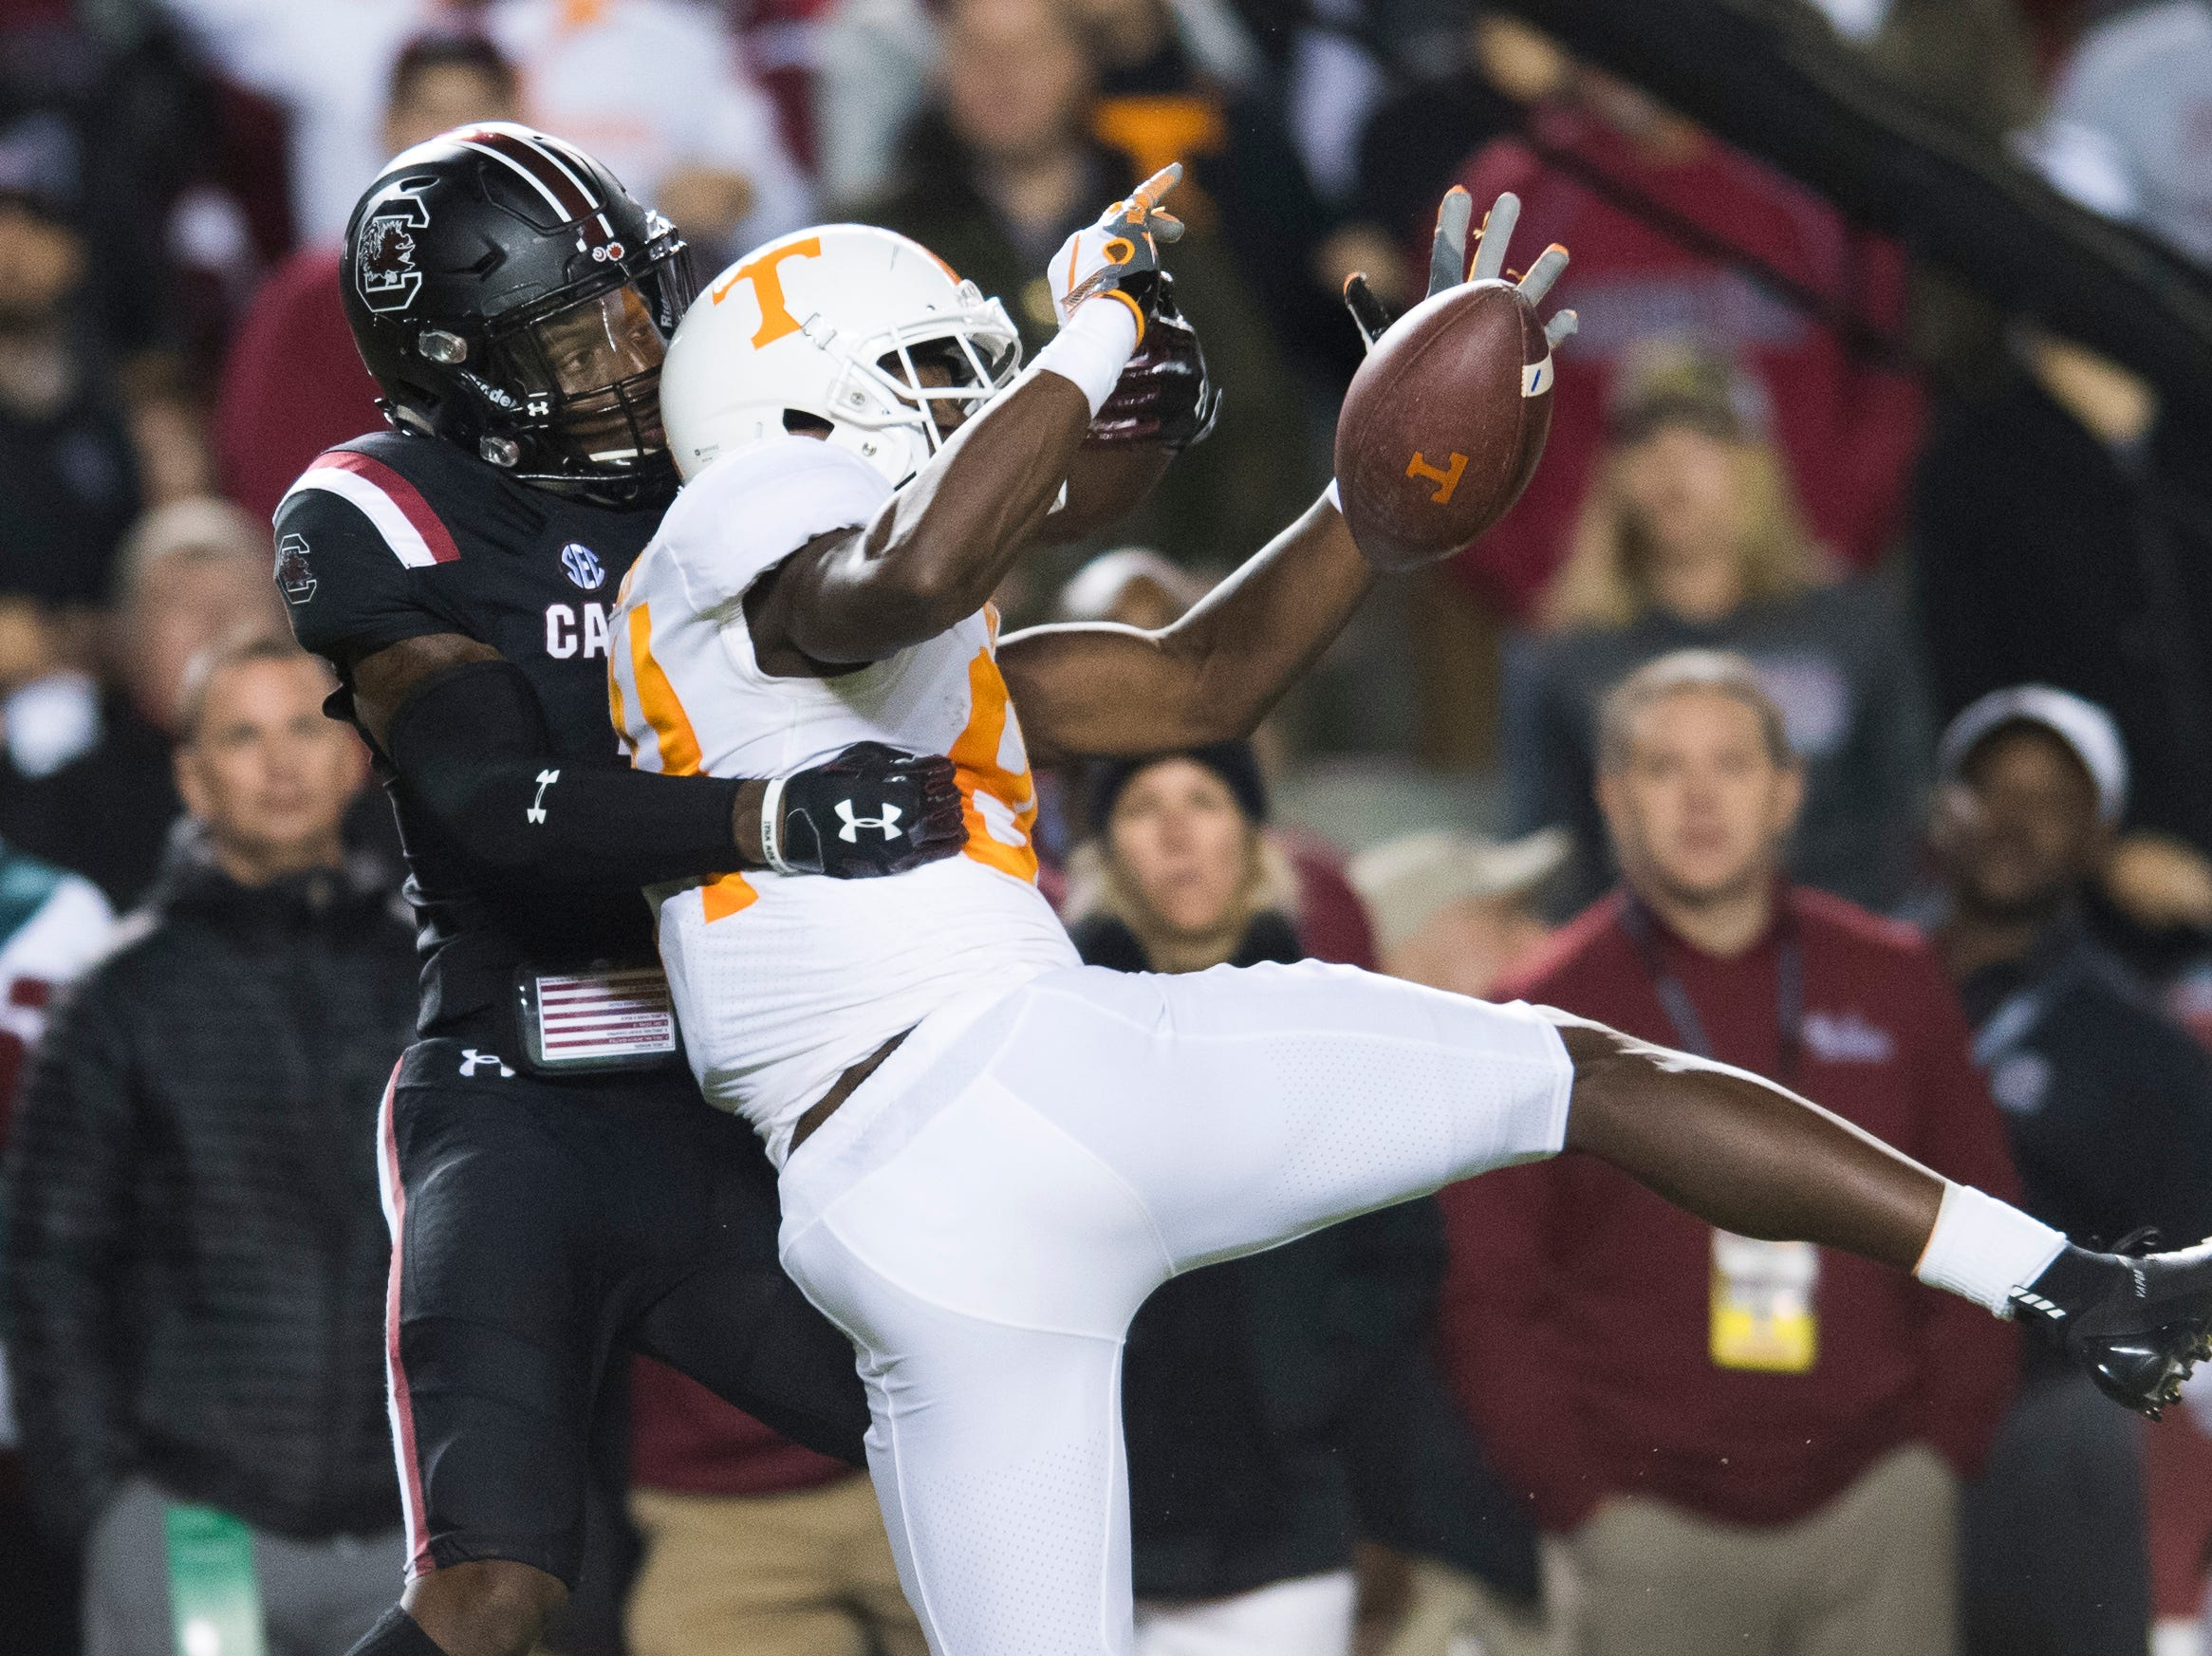 Tennessee wide receiver Josh Palmer (84) is denied the pass by South Carolina defensive back Jaycee Horn (7) during a game between Tennessee and South Carolina at Williams-Brice Stadium in Columbia, South Carolina on Saturday, October 27, 2018.